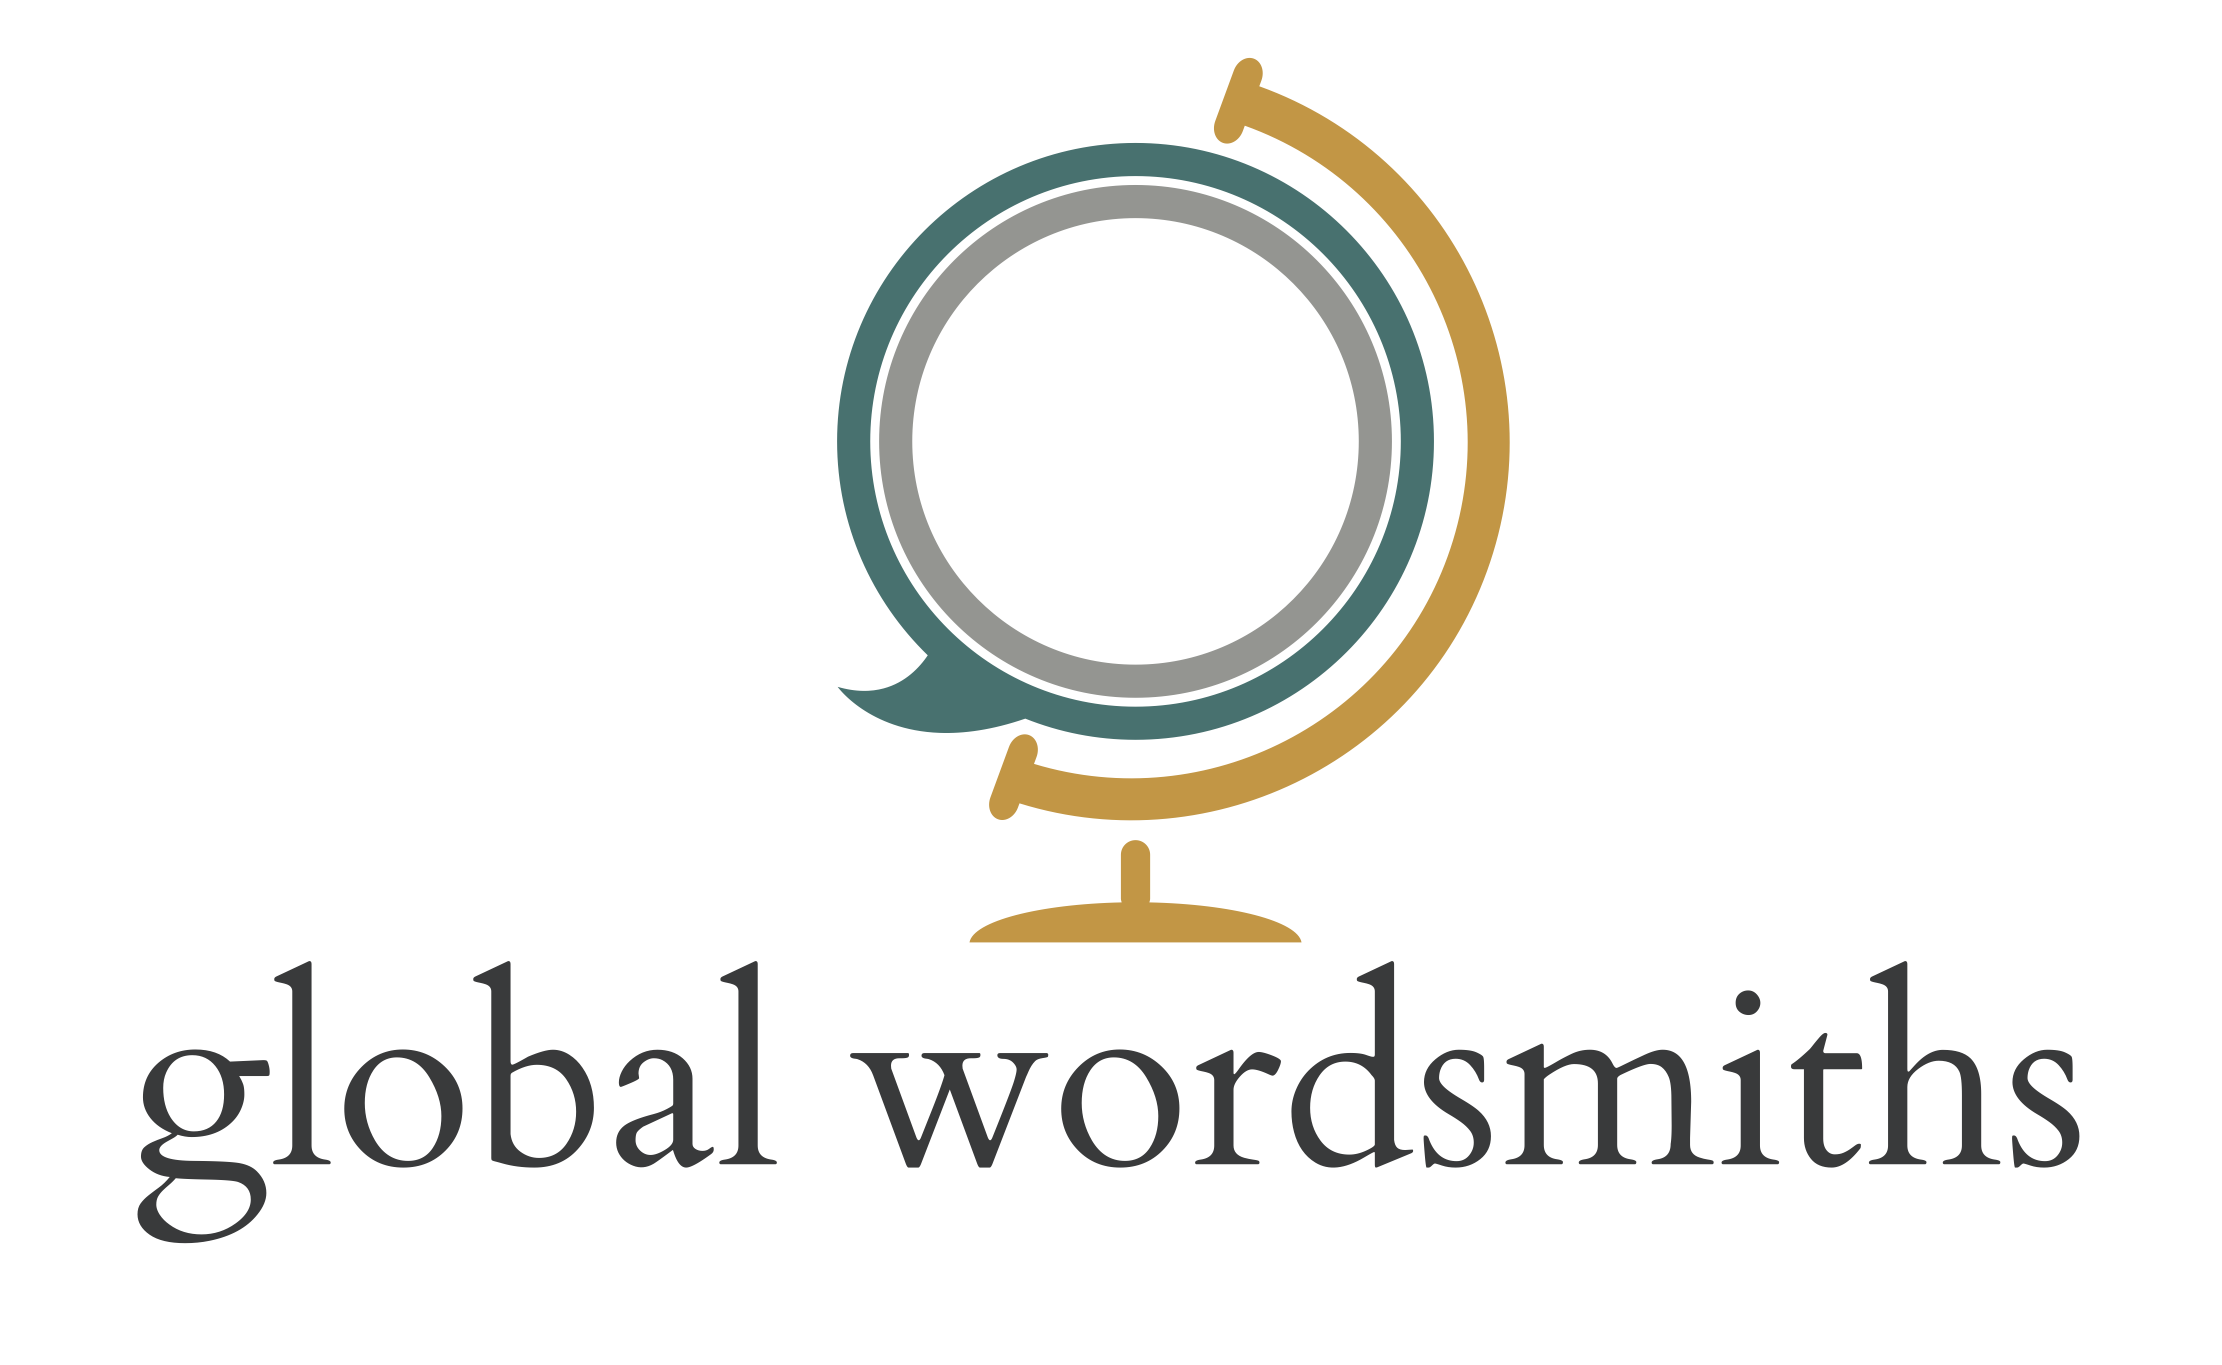 Global_Wordsmiths Logo